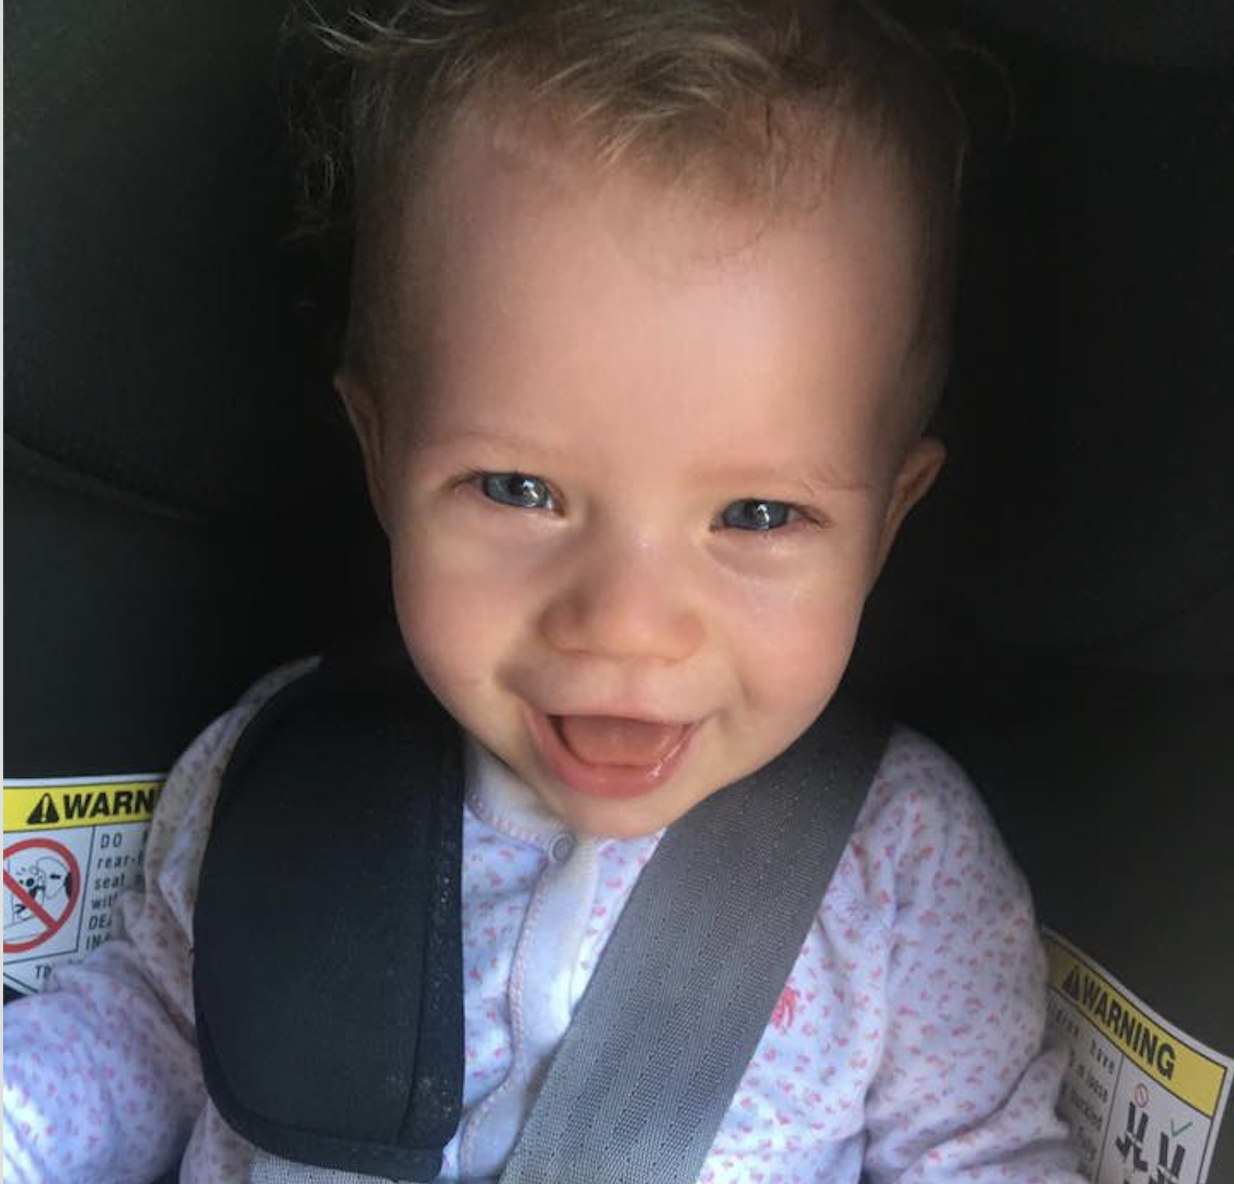 A healthy baby whose mom is making responsible and thoroughly researched vaccine decisions